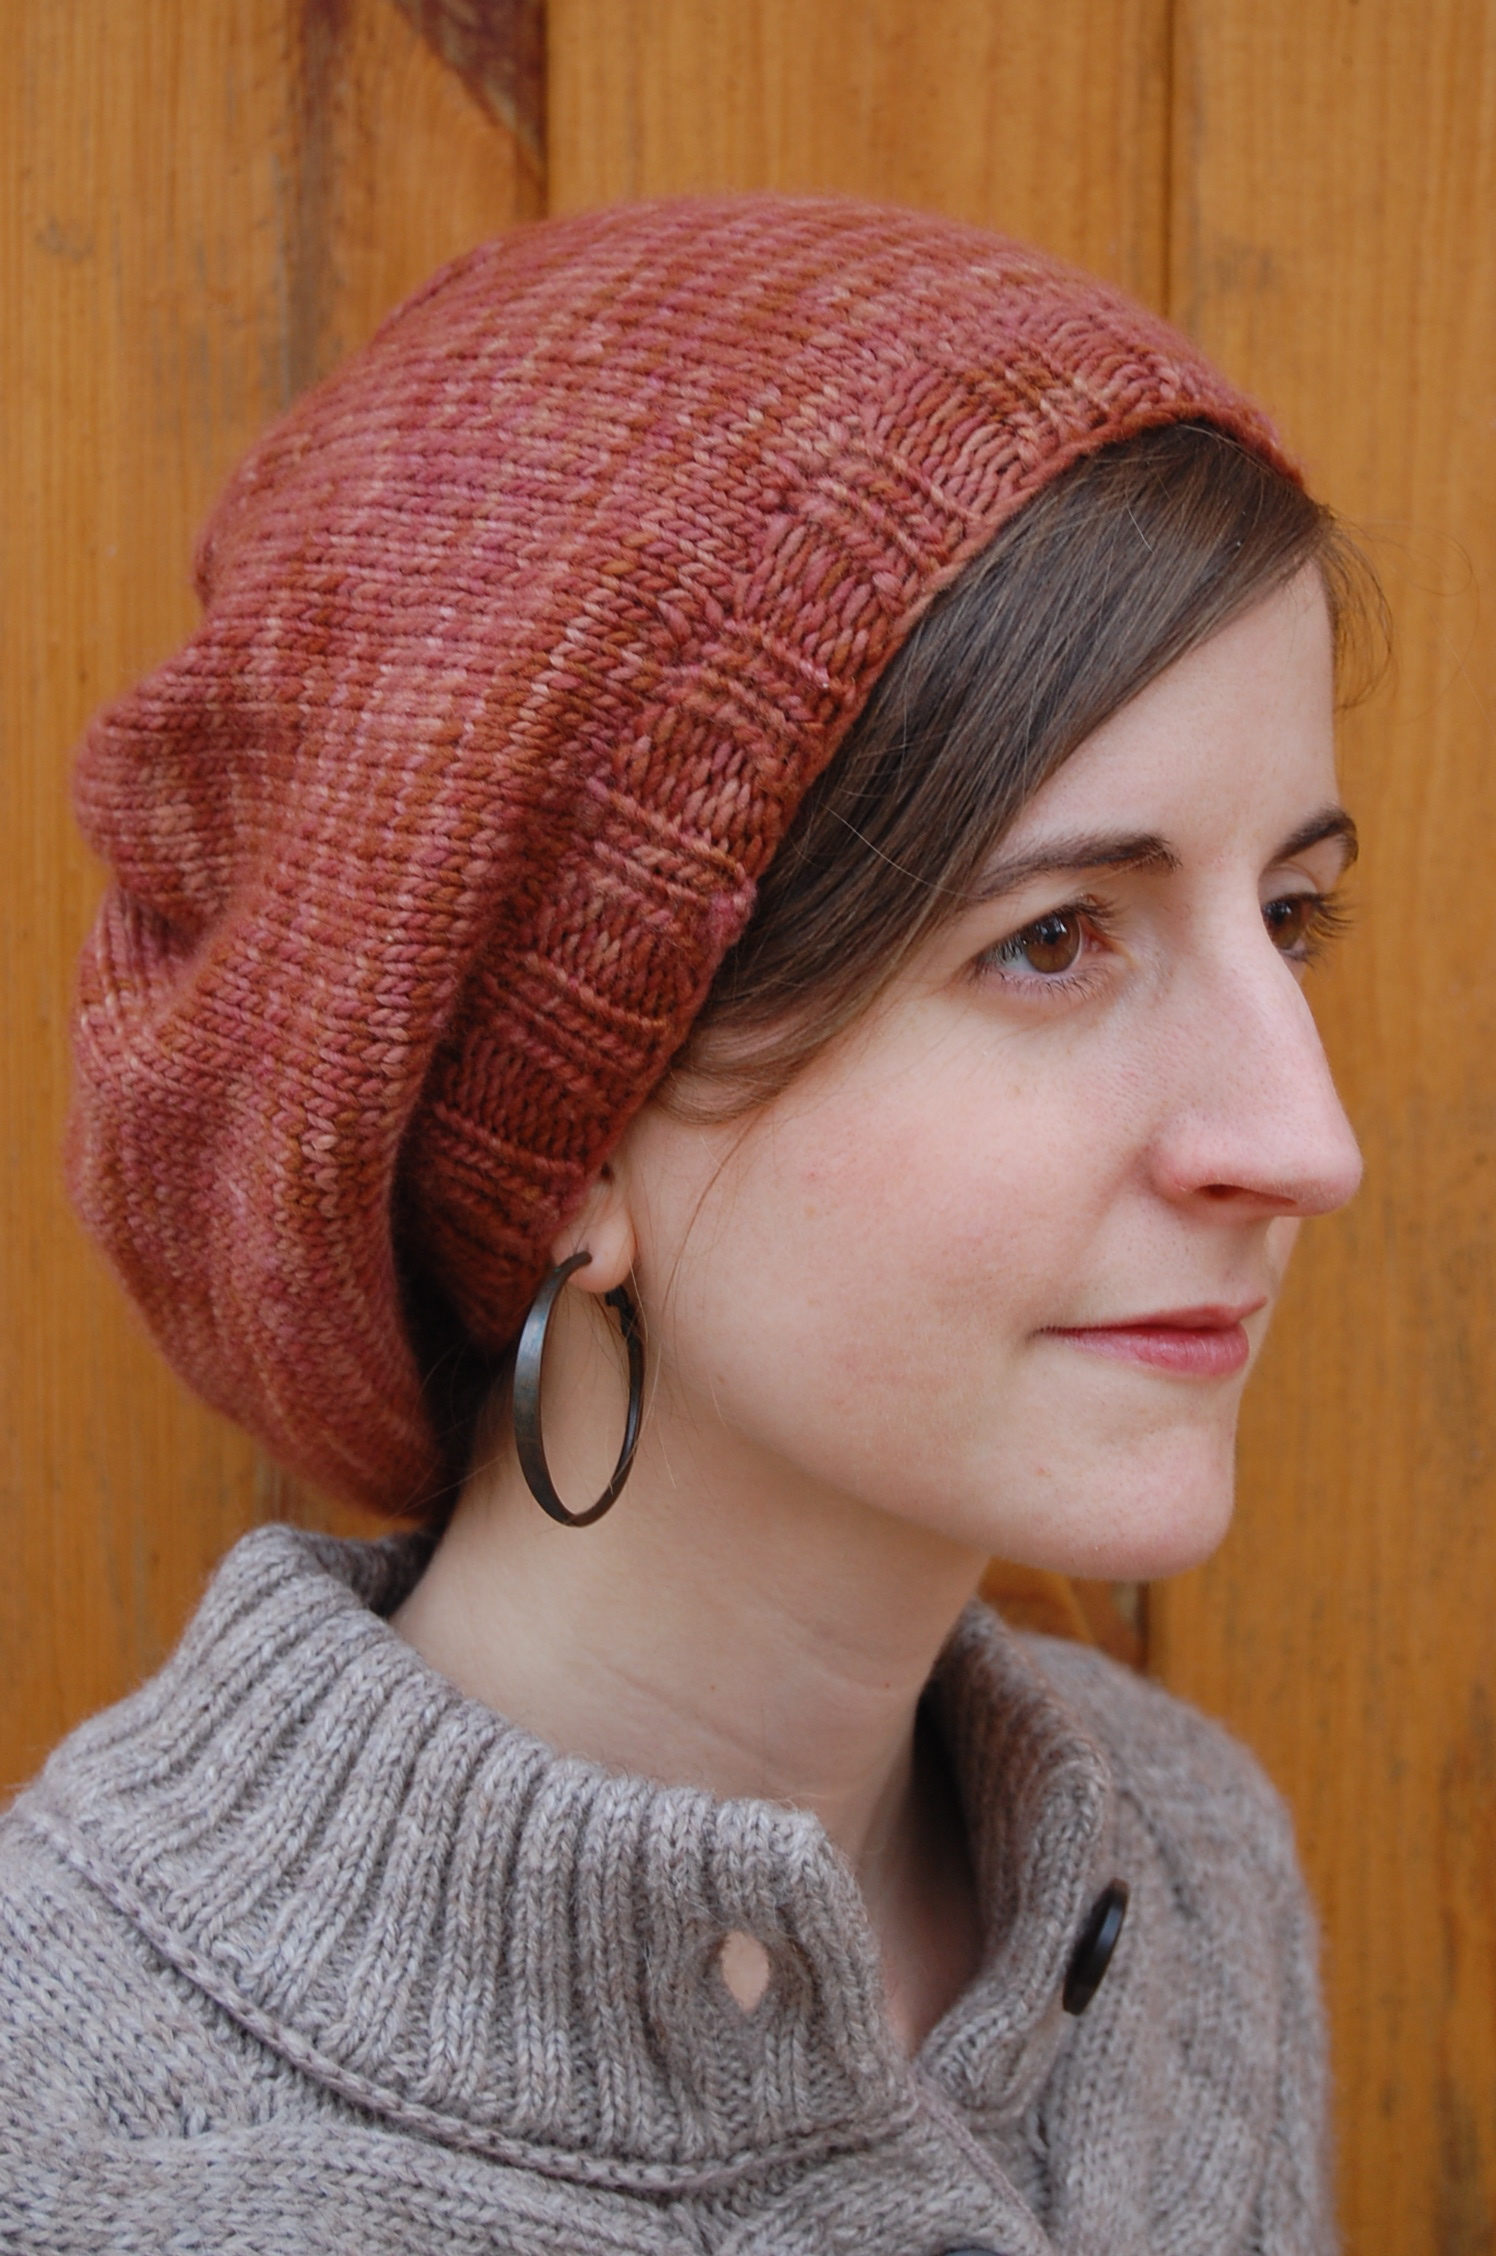 Knitting Patterns Free Slouchy Hat : Knitting Patterns Galore - Parisian Slouch Hat